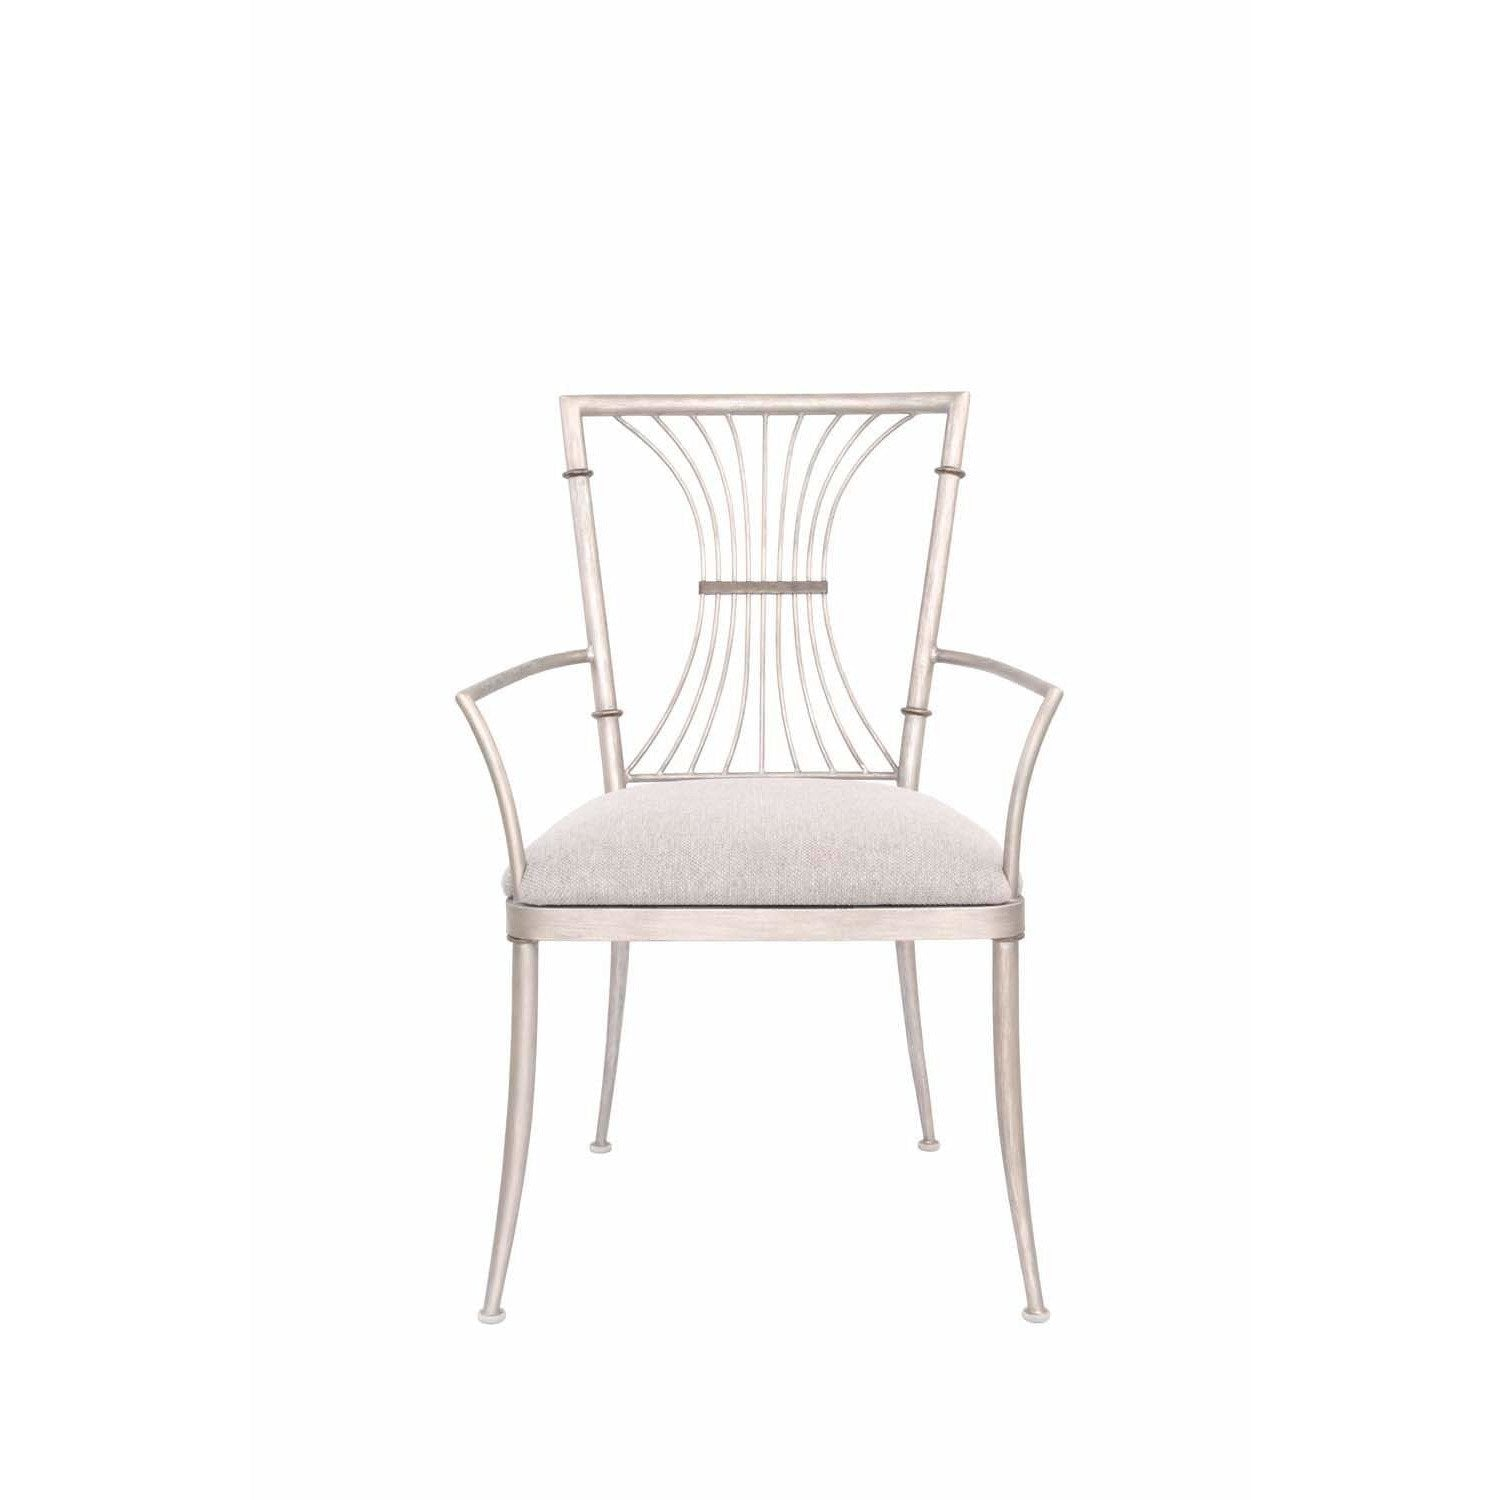 Kalco Lighting Chairs Pearl Silver Bal Harbour Dining Chair By Kalco Lighting 800101